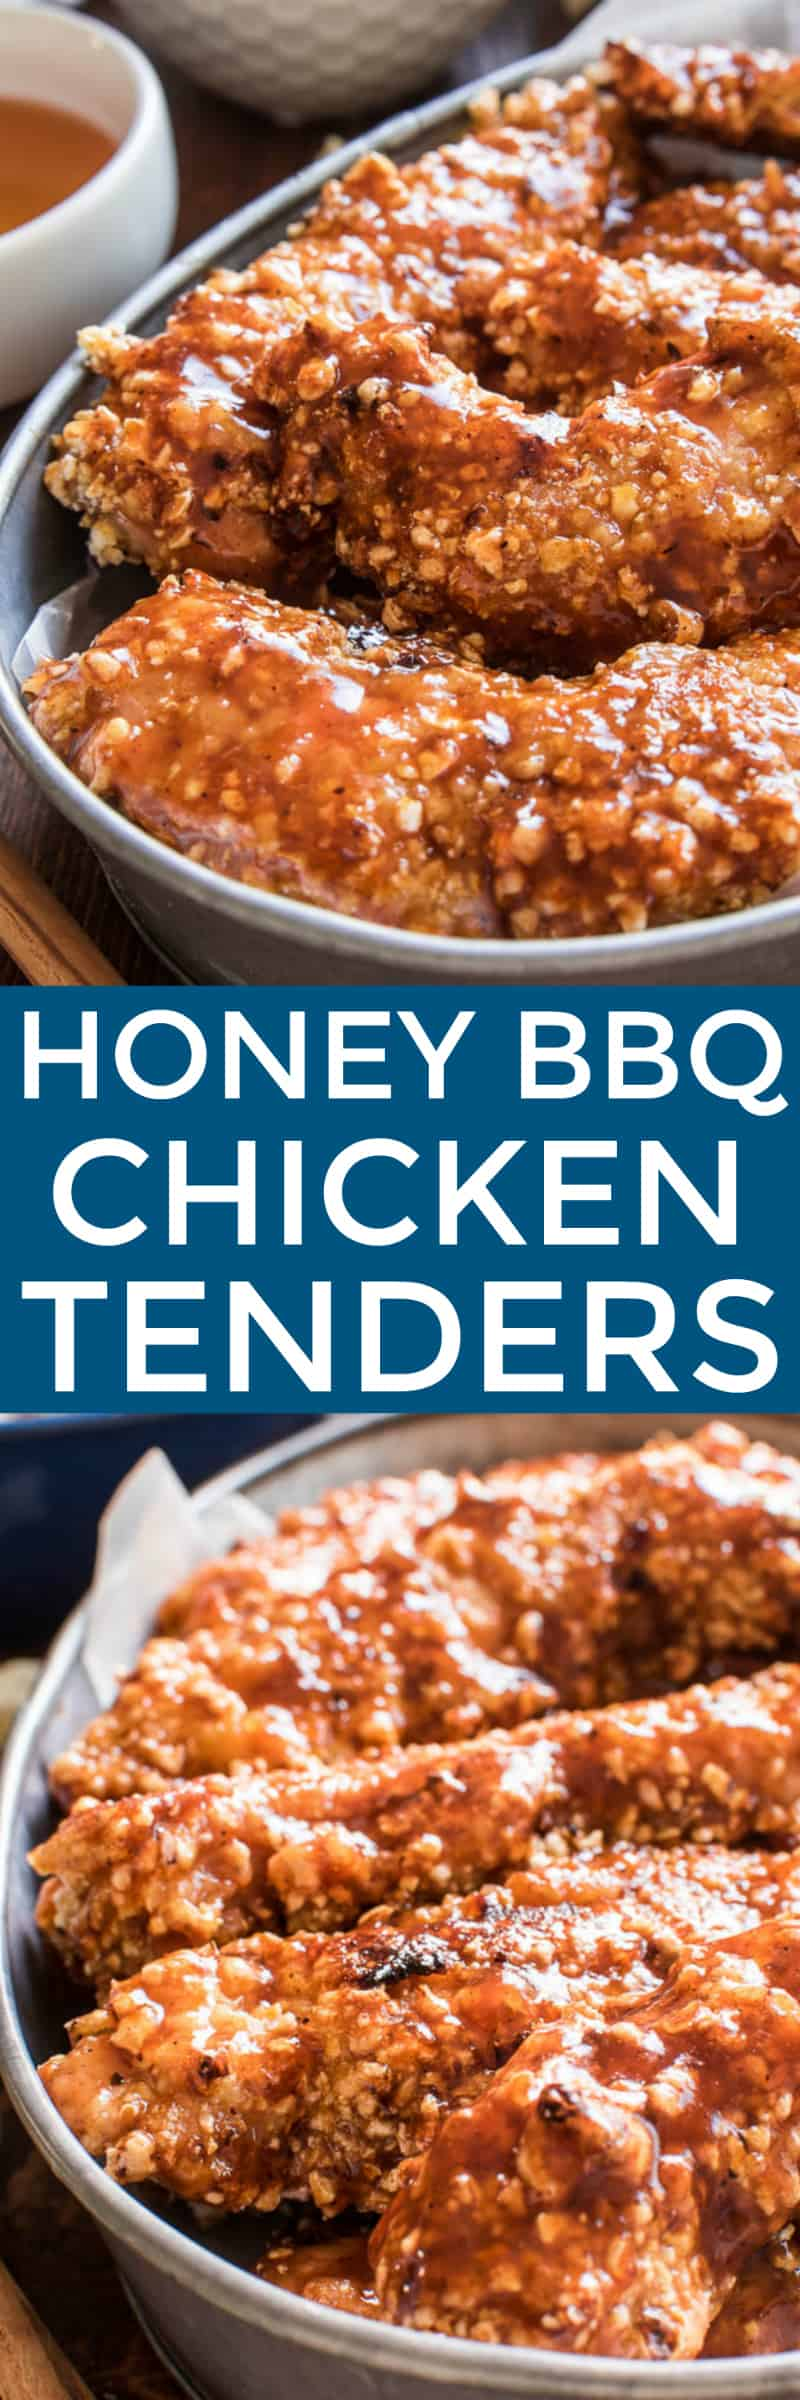 Honey BBQ Chicken Tenders are the perfect option for easy weeknight dinners! Tender, juicy chicken dipped in barbecue sauce, coated in crunchy kettle corn, and finished off with a sweet honey barbecue glaze. These chicken tenders are oven-baked and make a delicious family meal....and they're perfect for game days, too. If your family loves chicken tenders, this recipe is a must make!